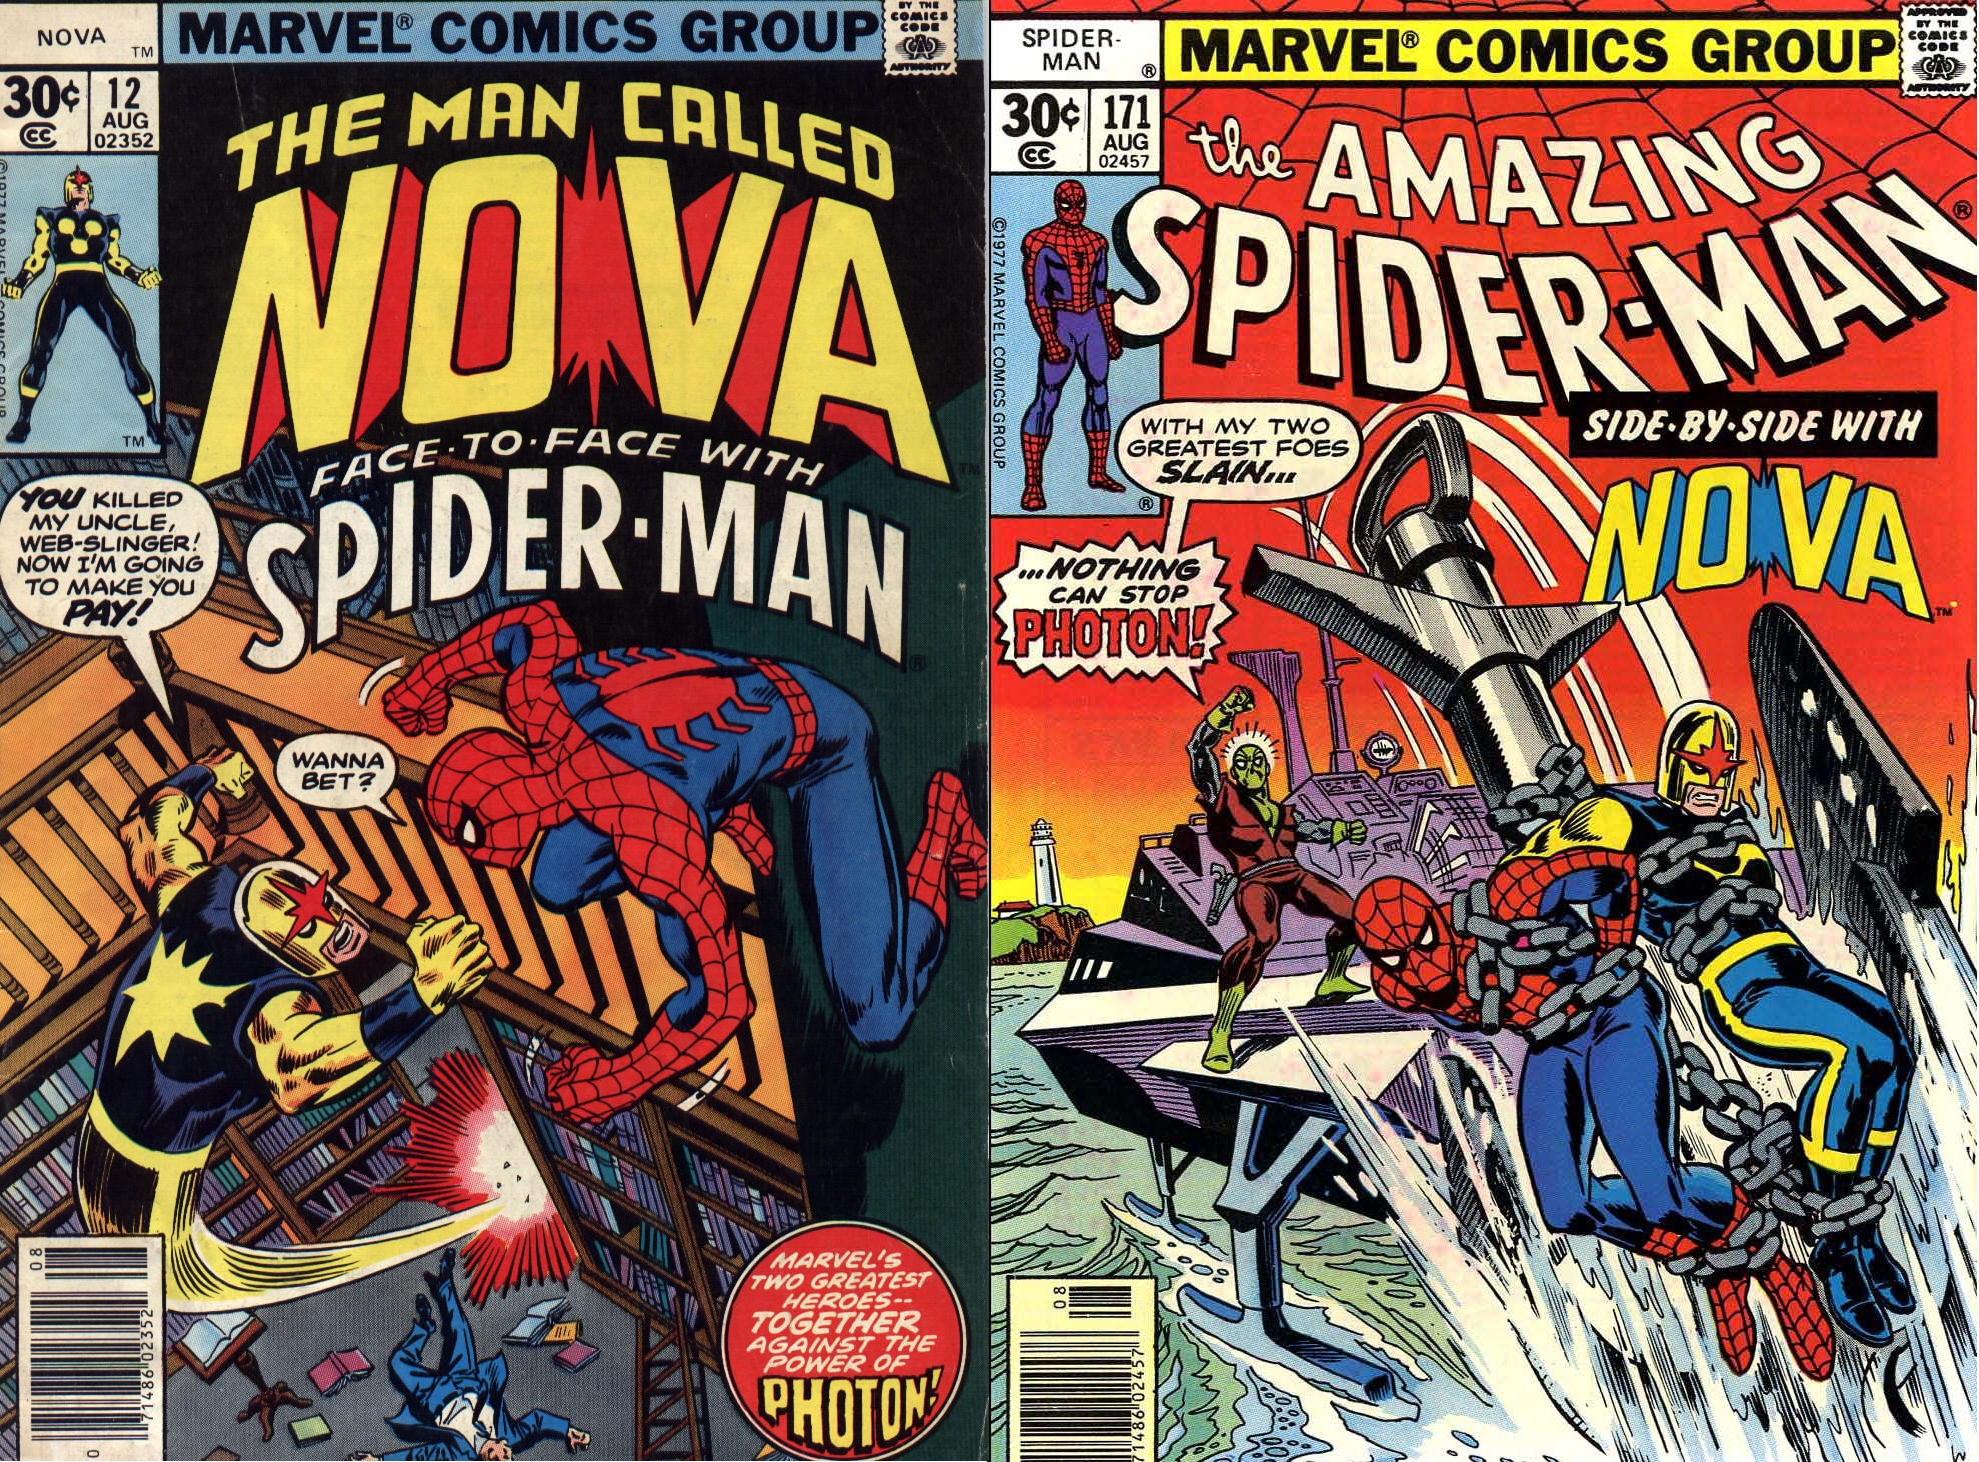 Has anyone ever uttered a true statement on a comic book cover?